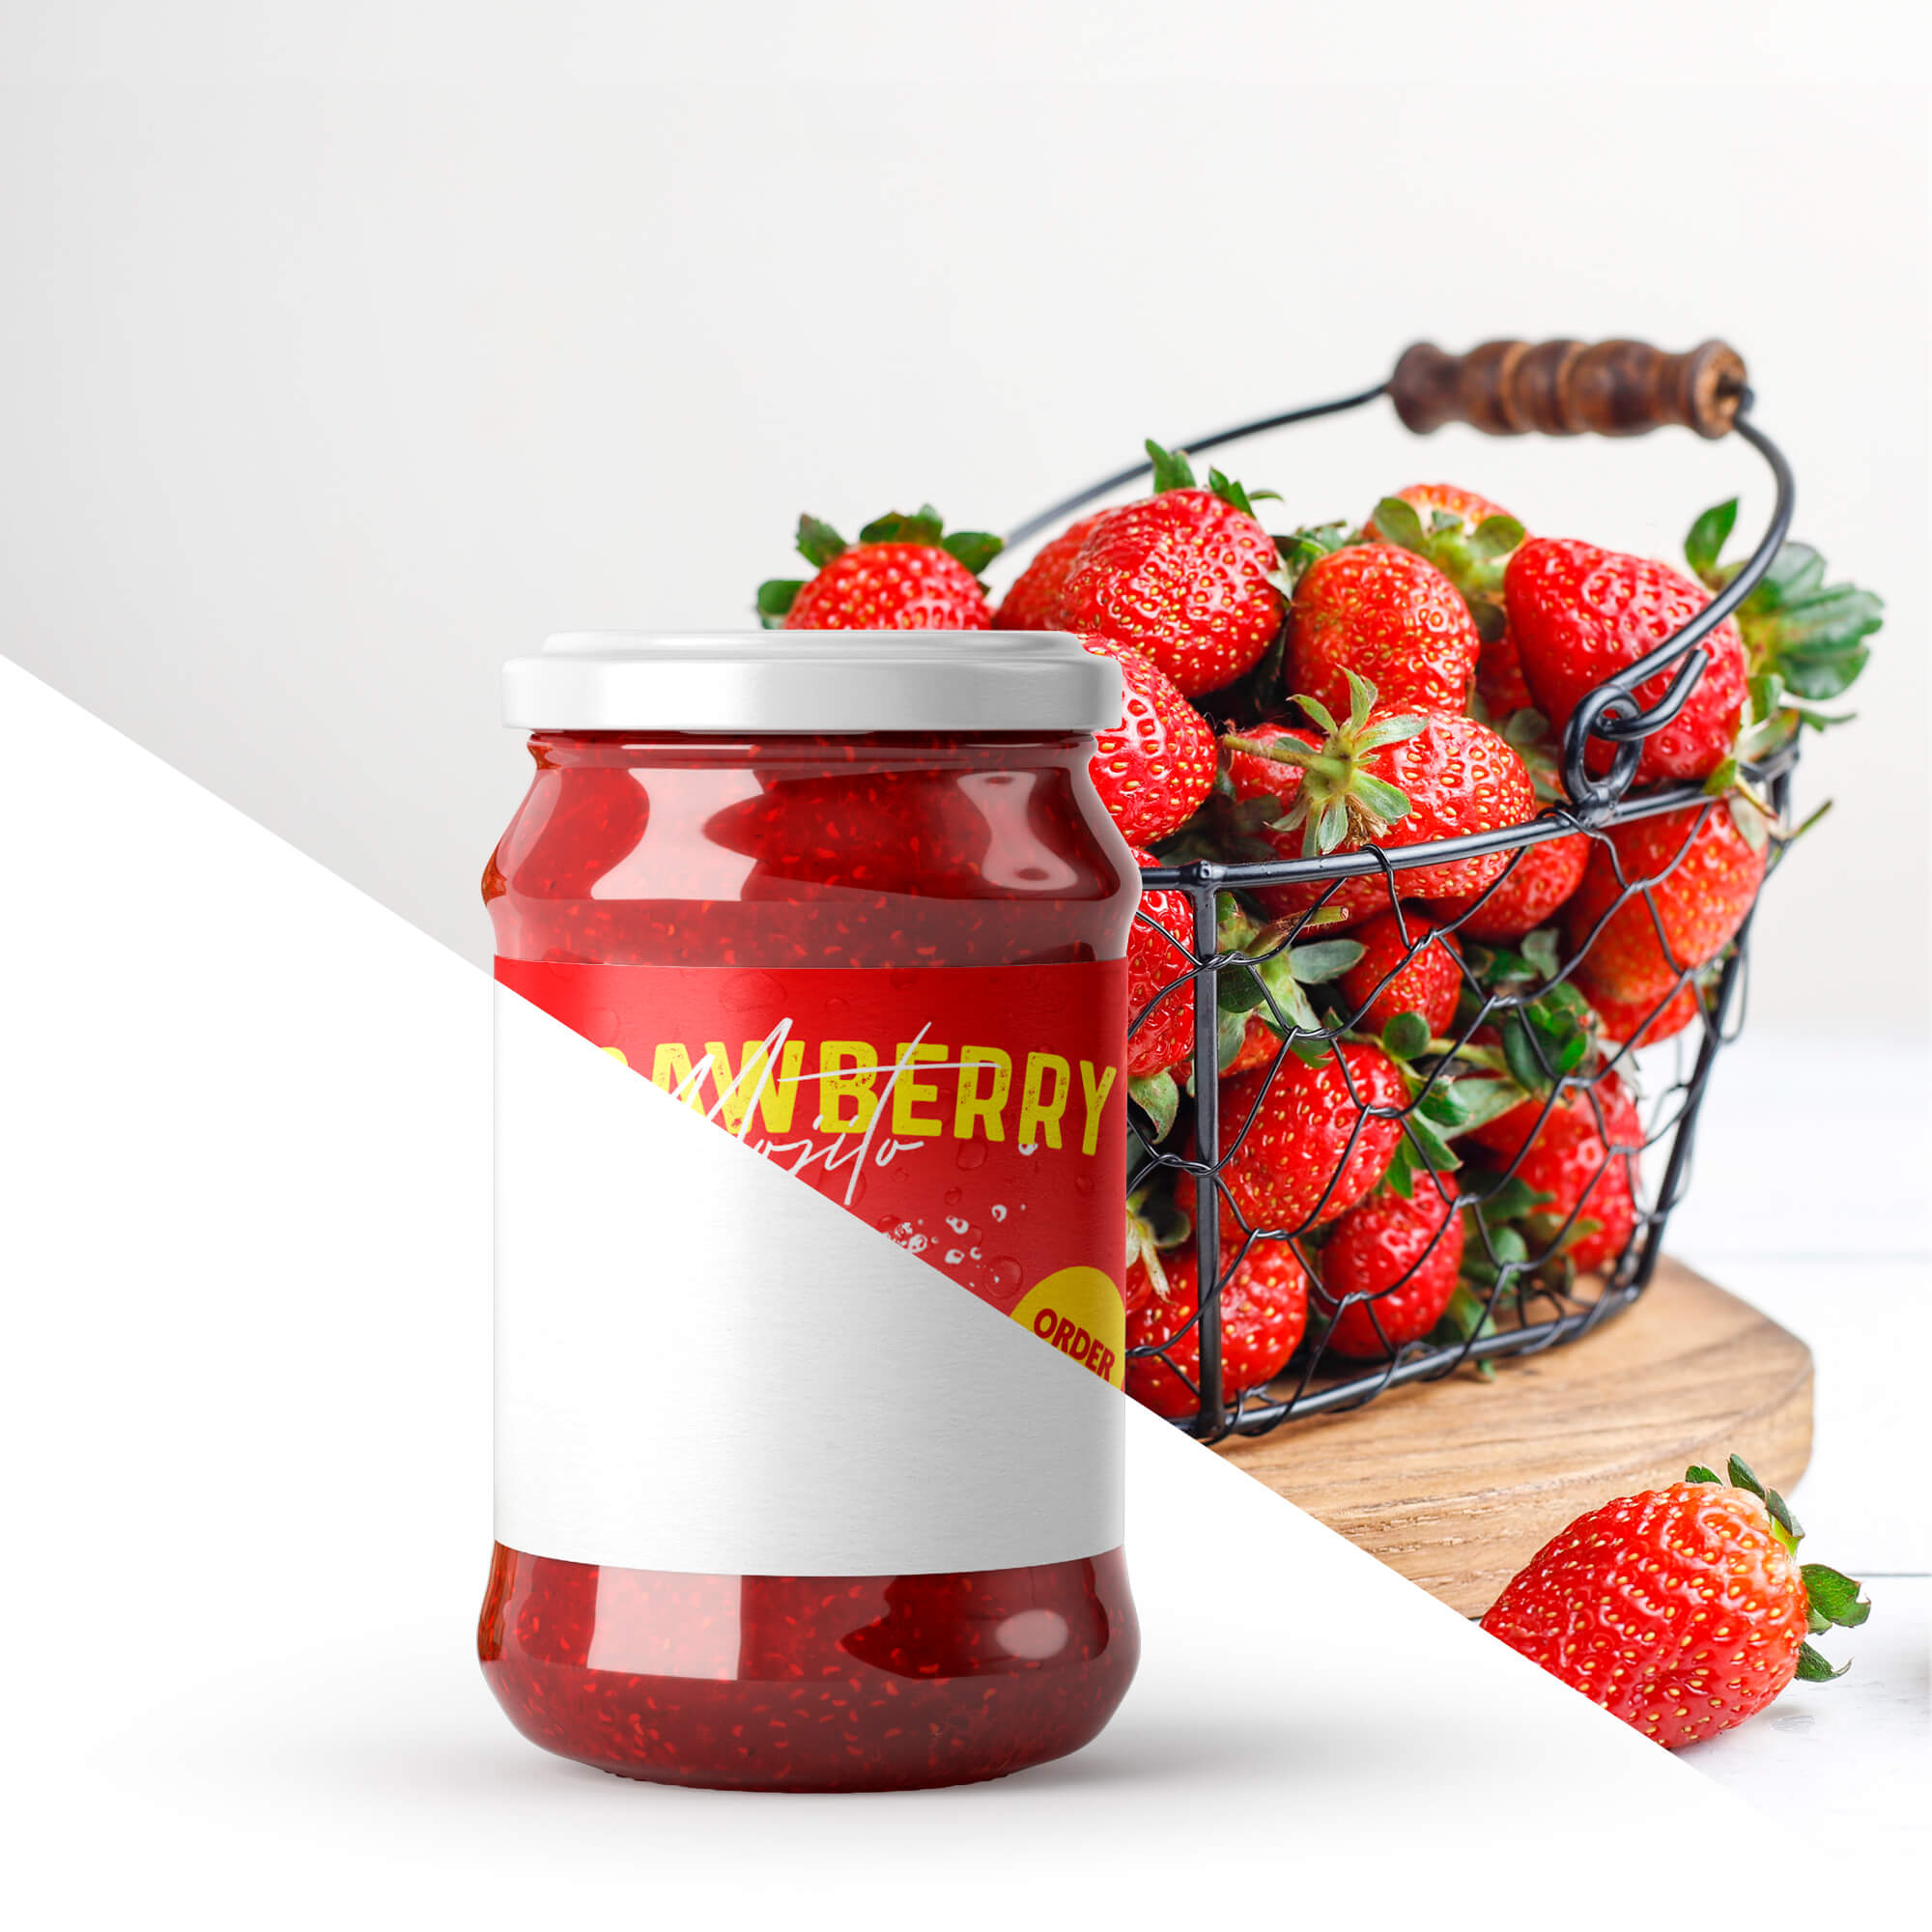 Editable Free Jam Bottle Mockup PSD Template